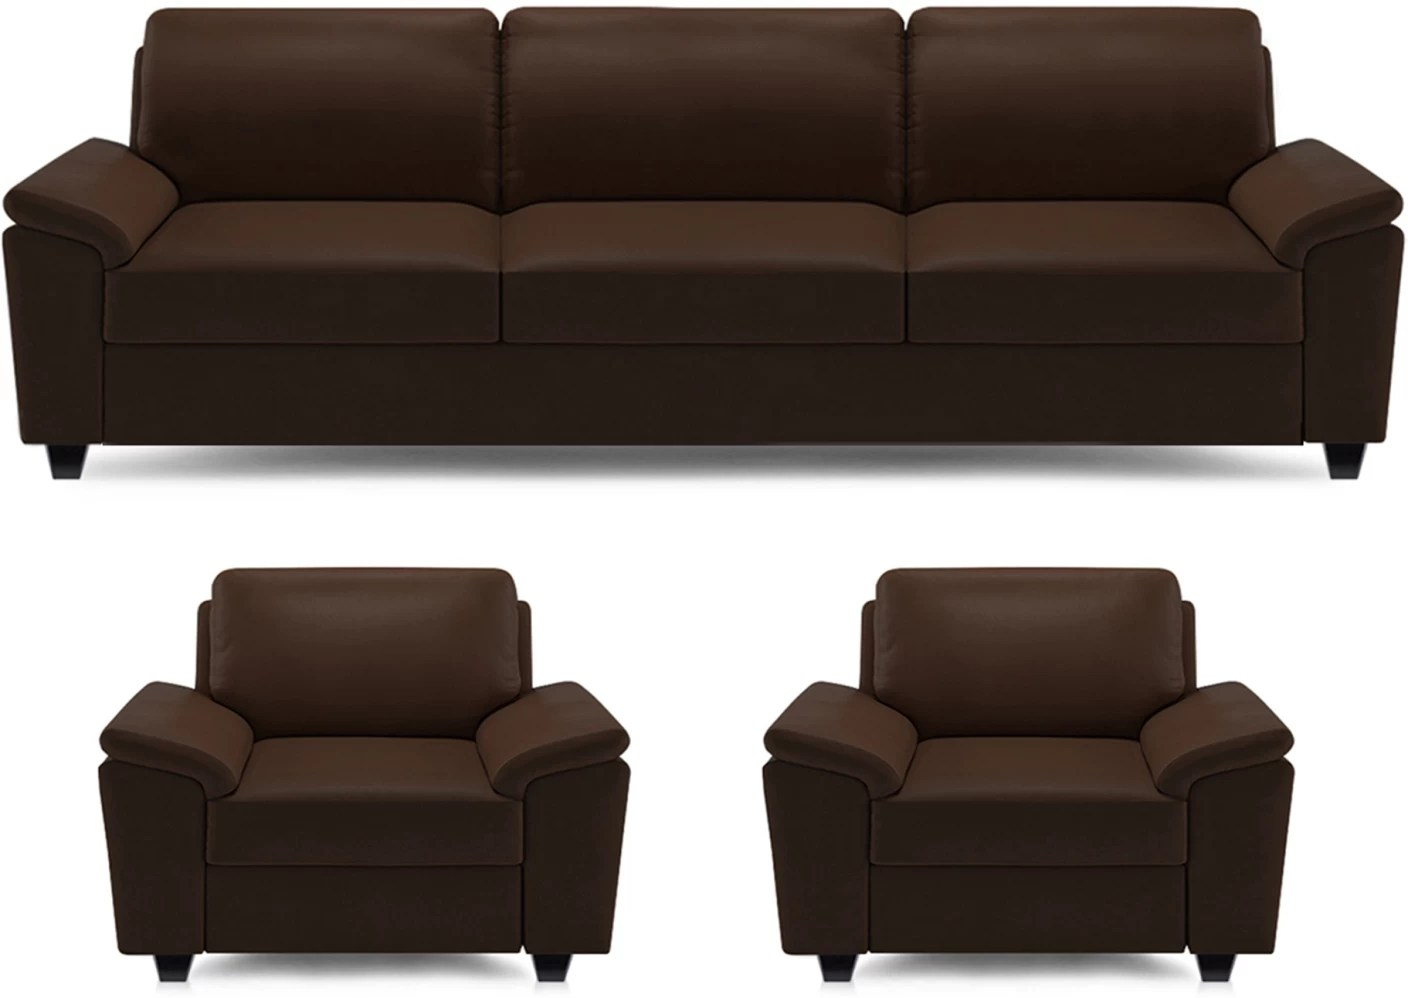 stanley sofa cost india white sectional sofas dolphin oxford leatherette 3 43 1 brown set price